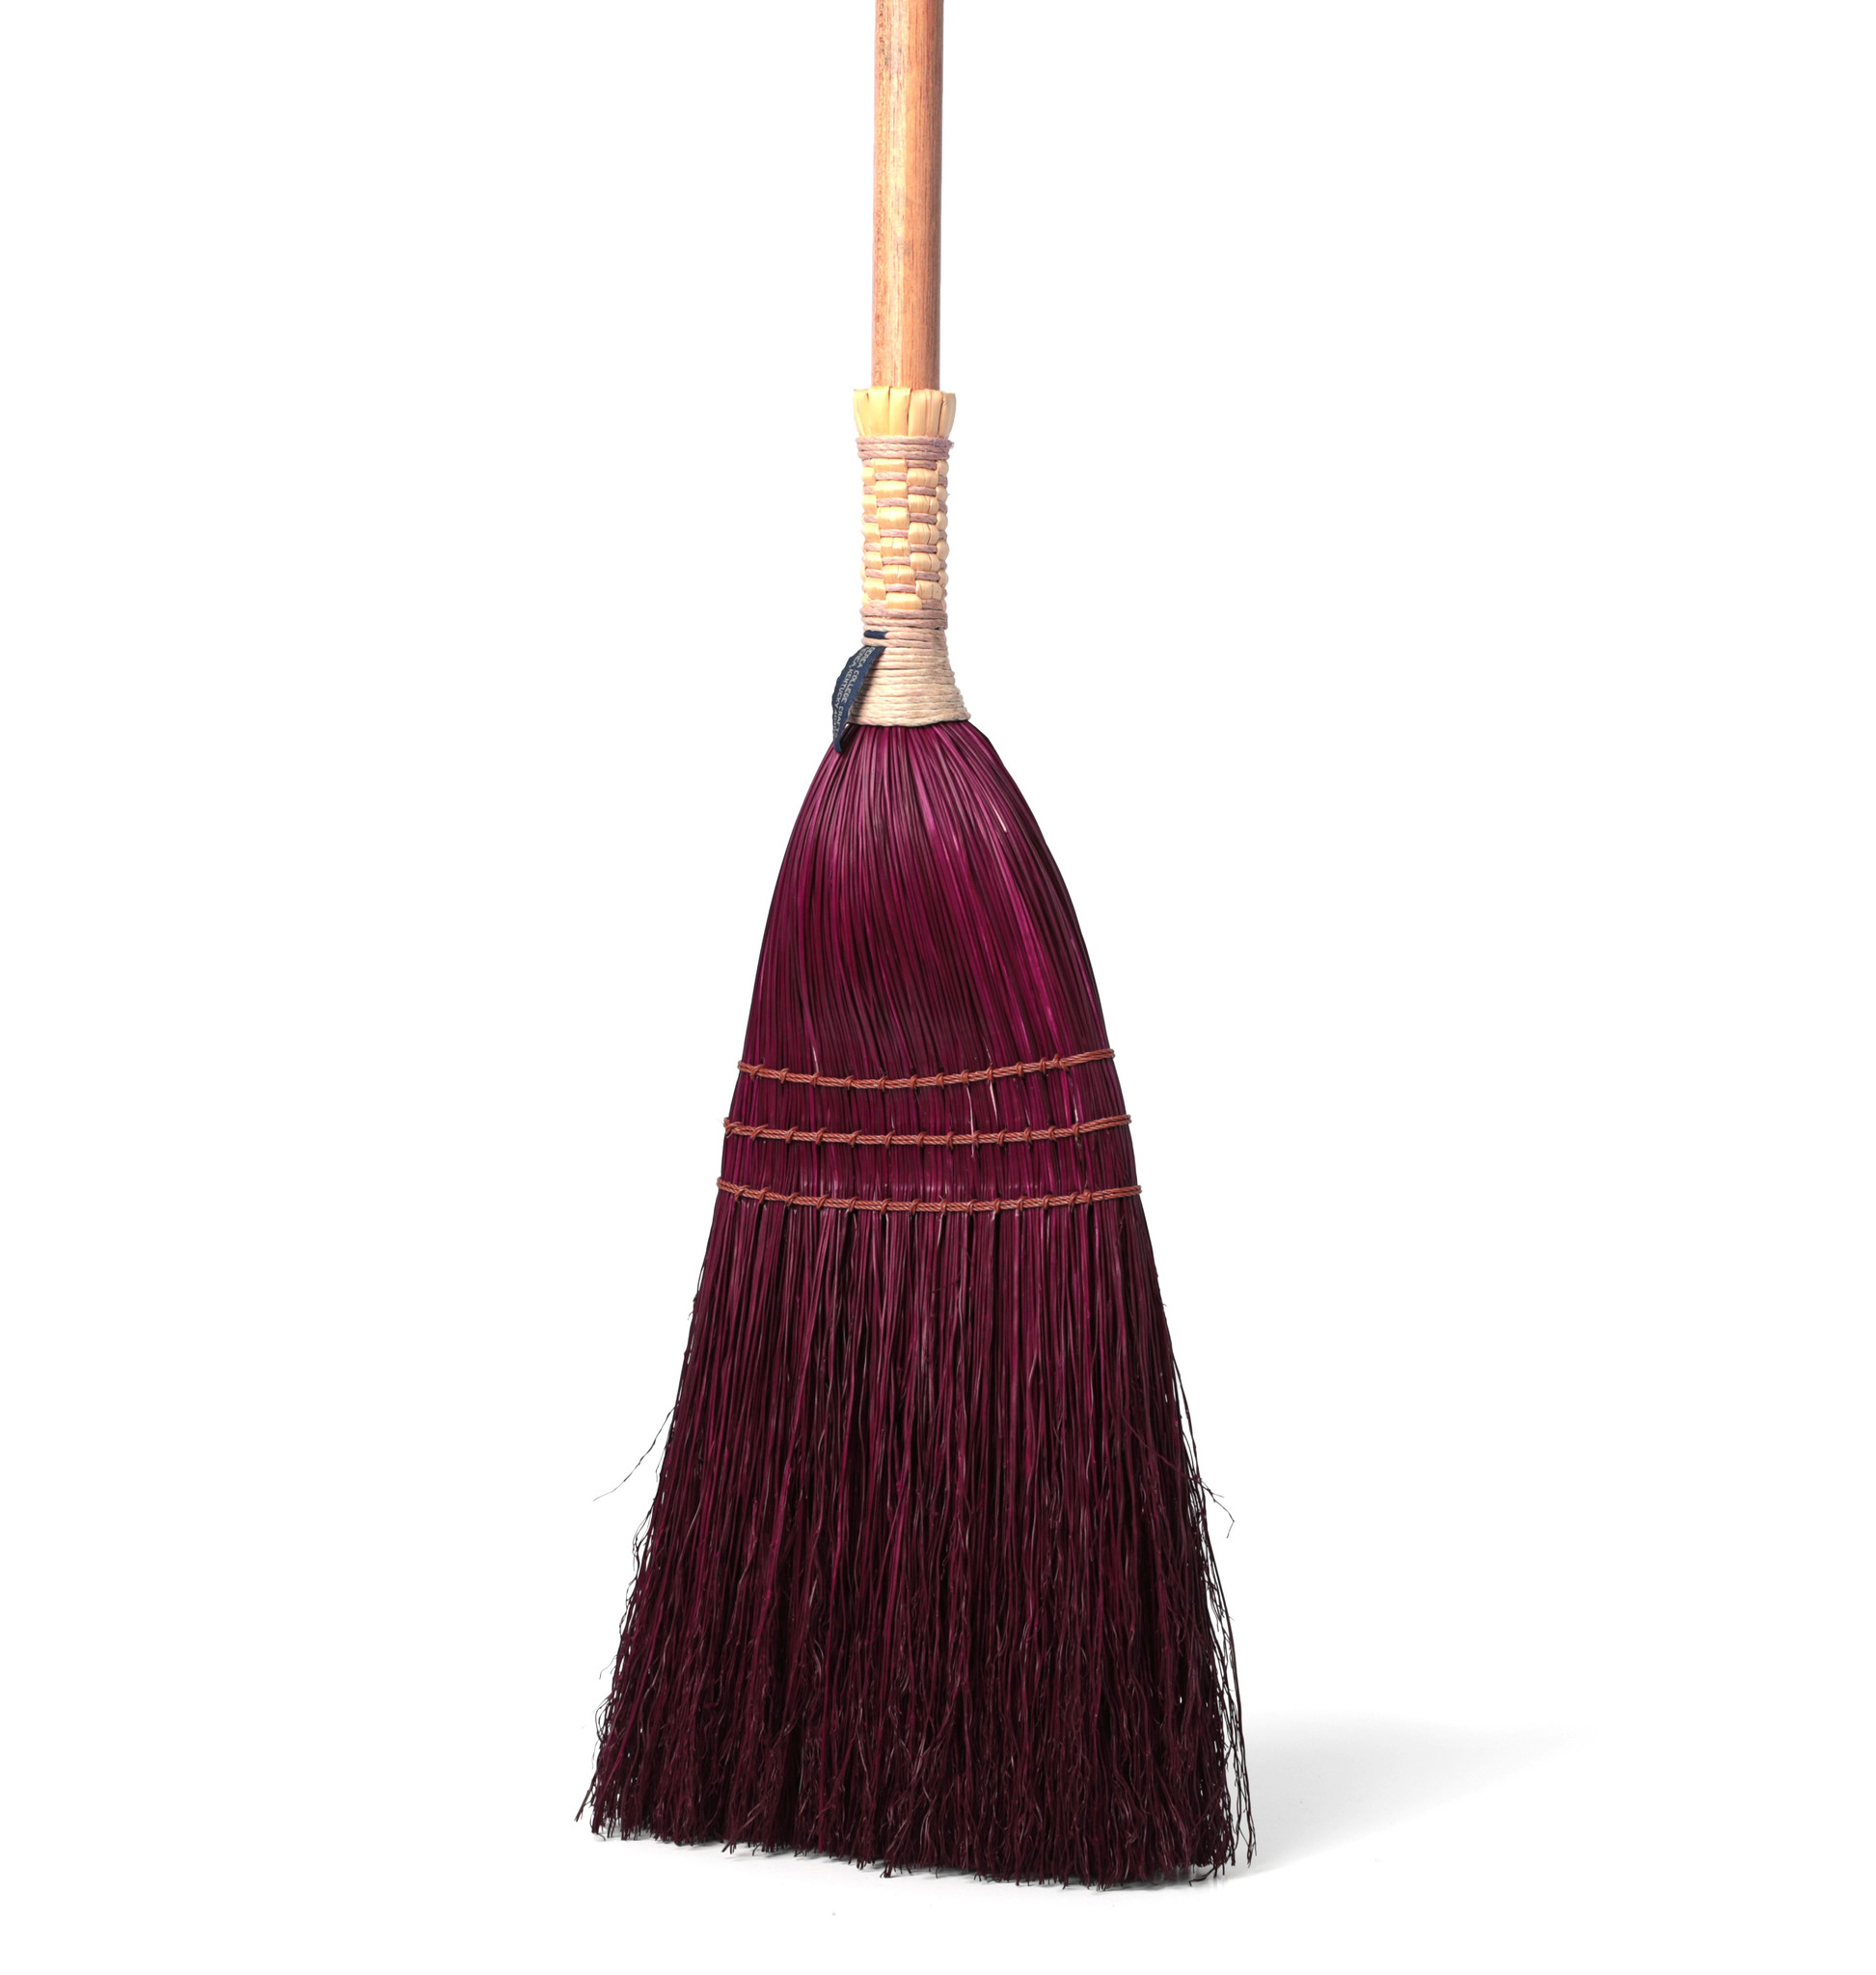 Shaker Braid Broom - Turned Handle-7